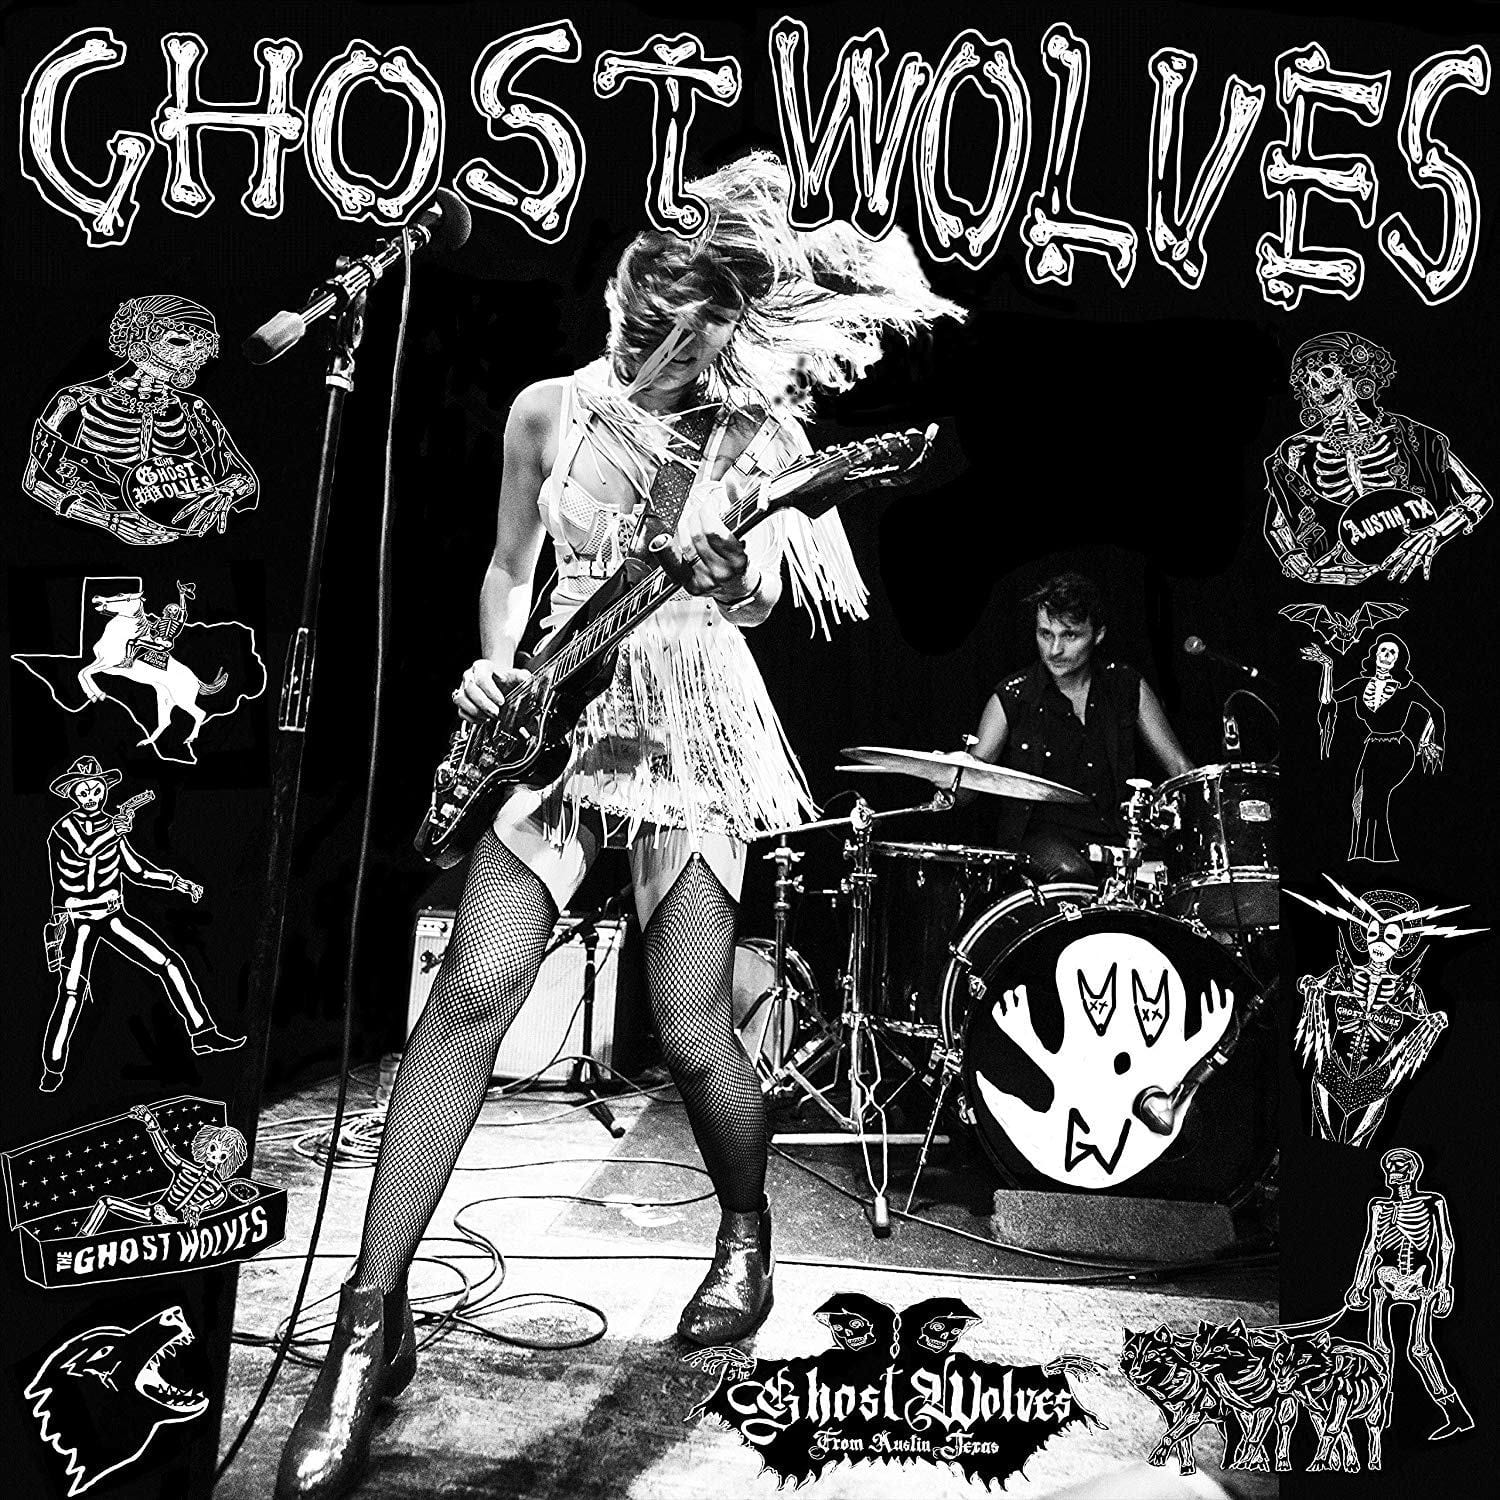 Ghost Wolves - Crooked Cop b/w Fist & Day Will Follow The Dawn [7'']